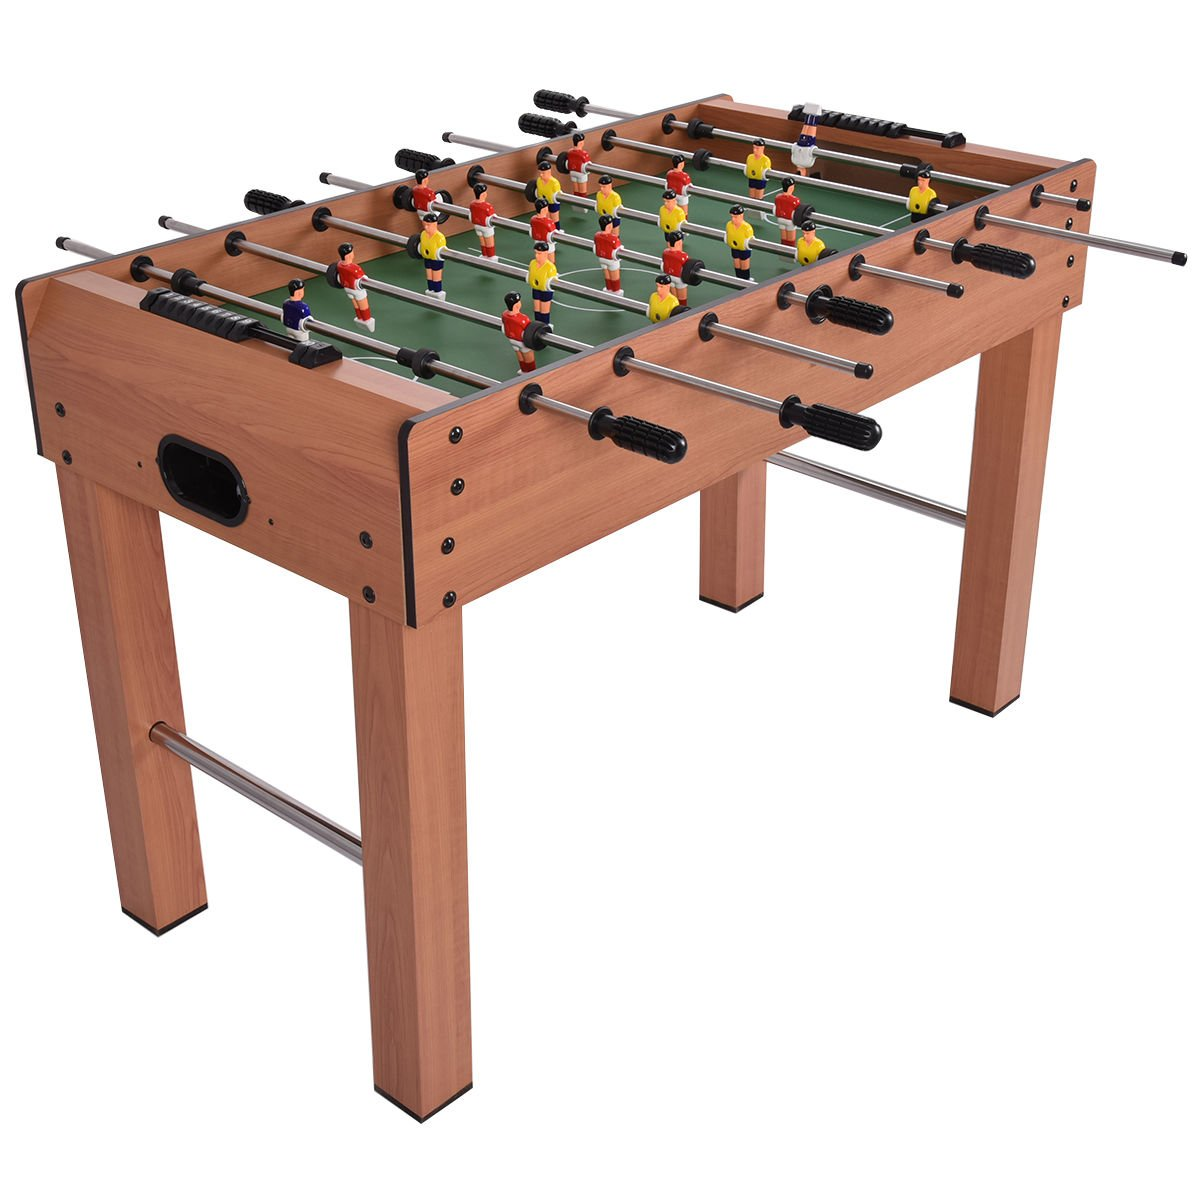 Giantex 48 Foosball Soccer Competition Table Top Set Game Room Sports with Legs TY510579